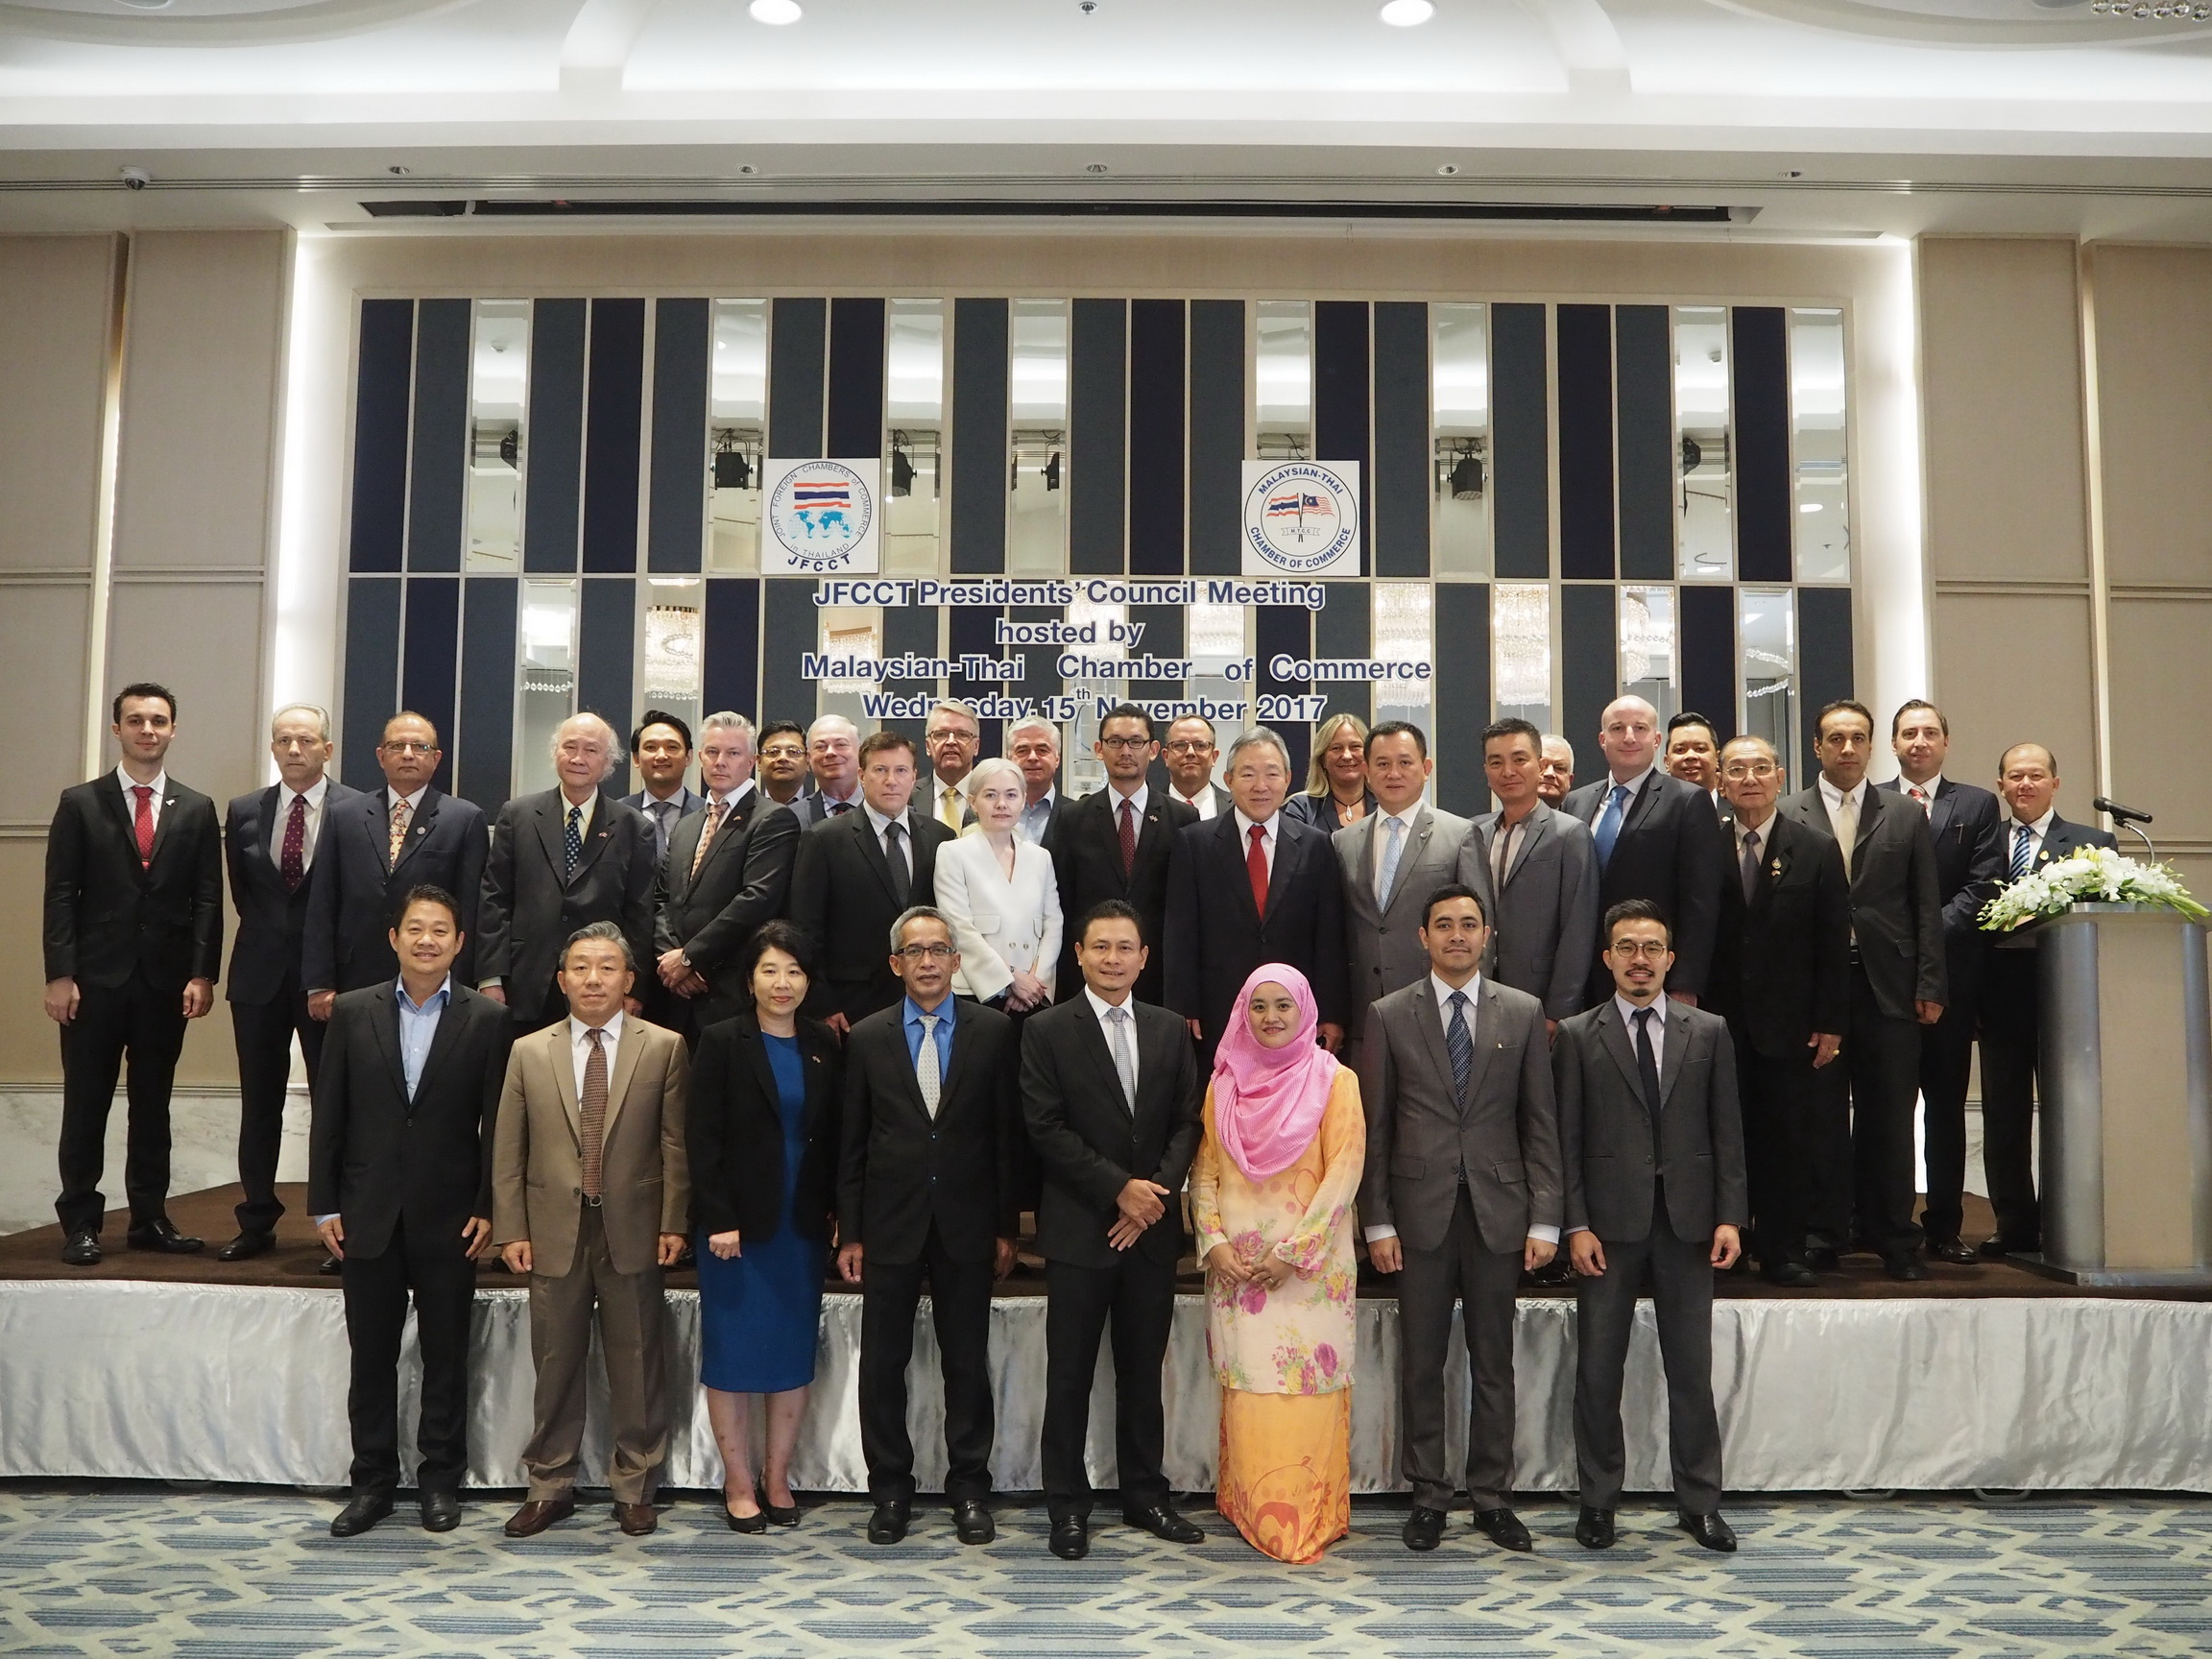 JFCCT-Presidents-Council-meeting-November-2017